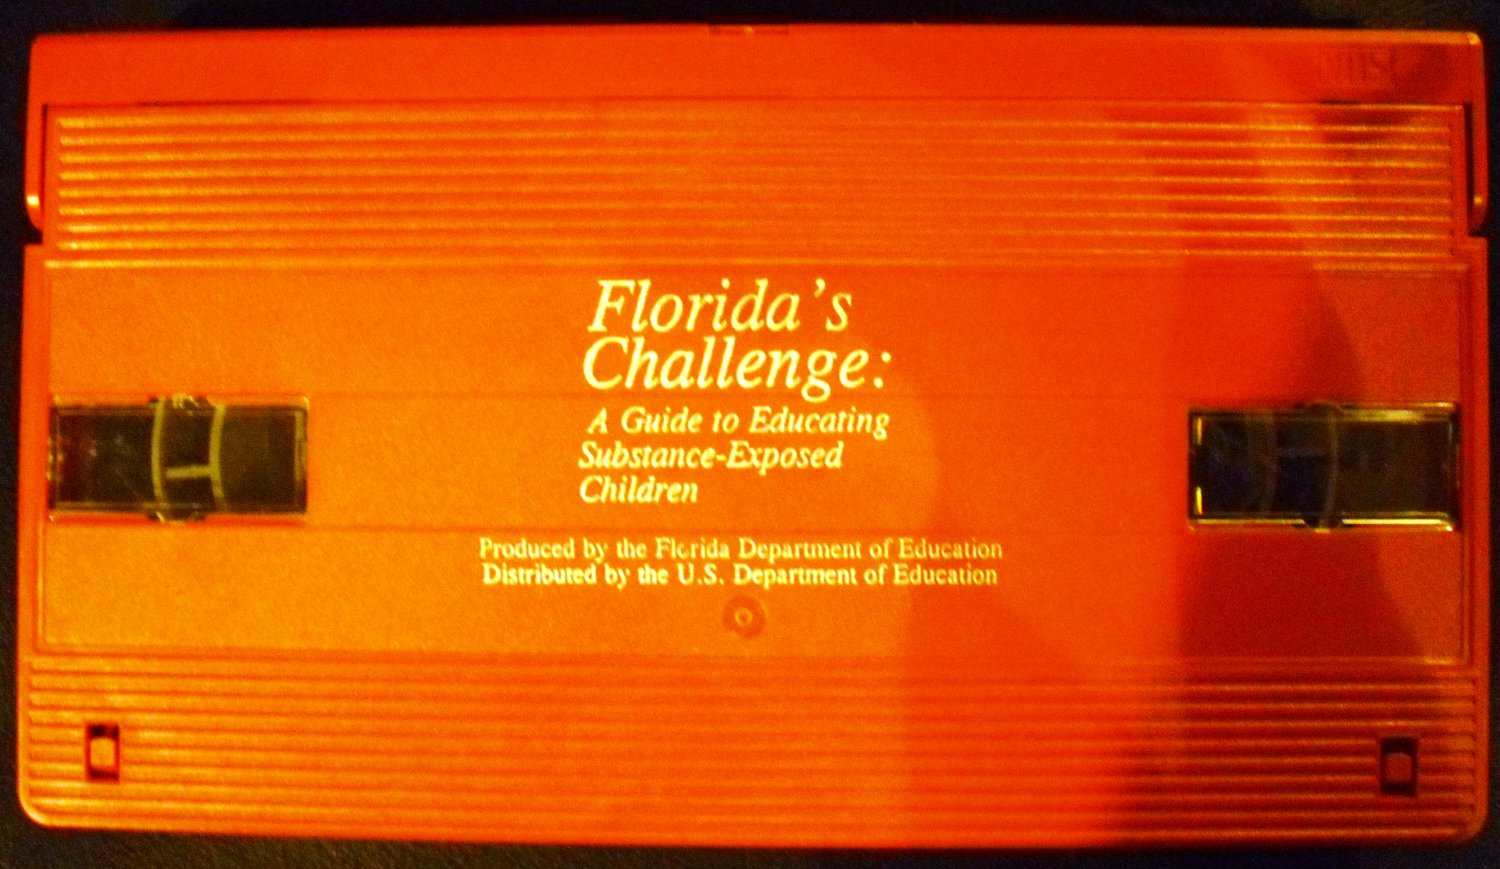 Florida's Challenge: A Guide to Educating Substance-Exposed Children (VHS)